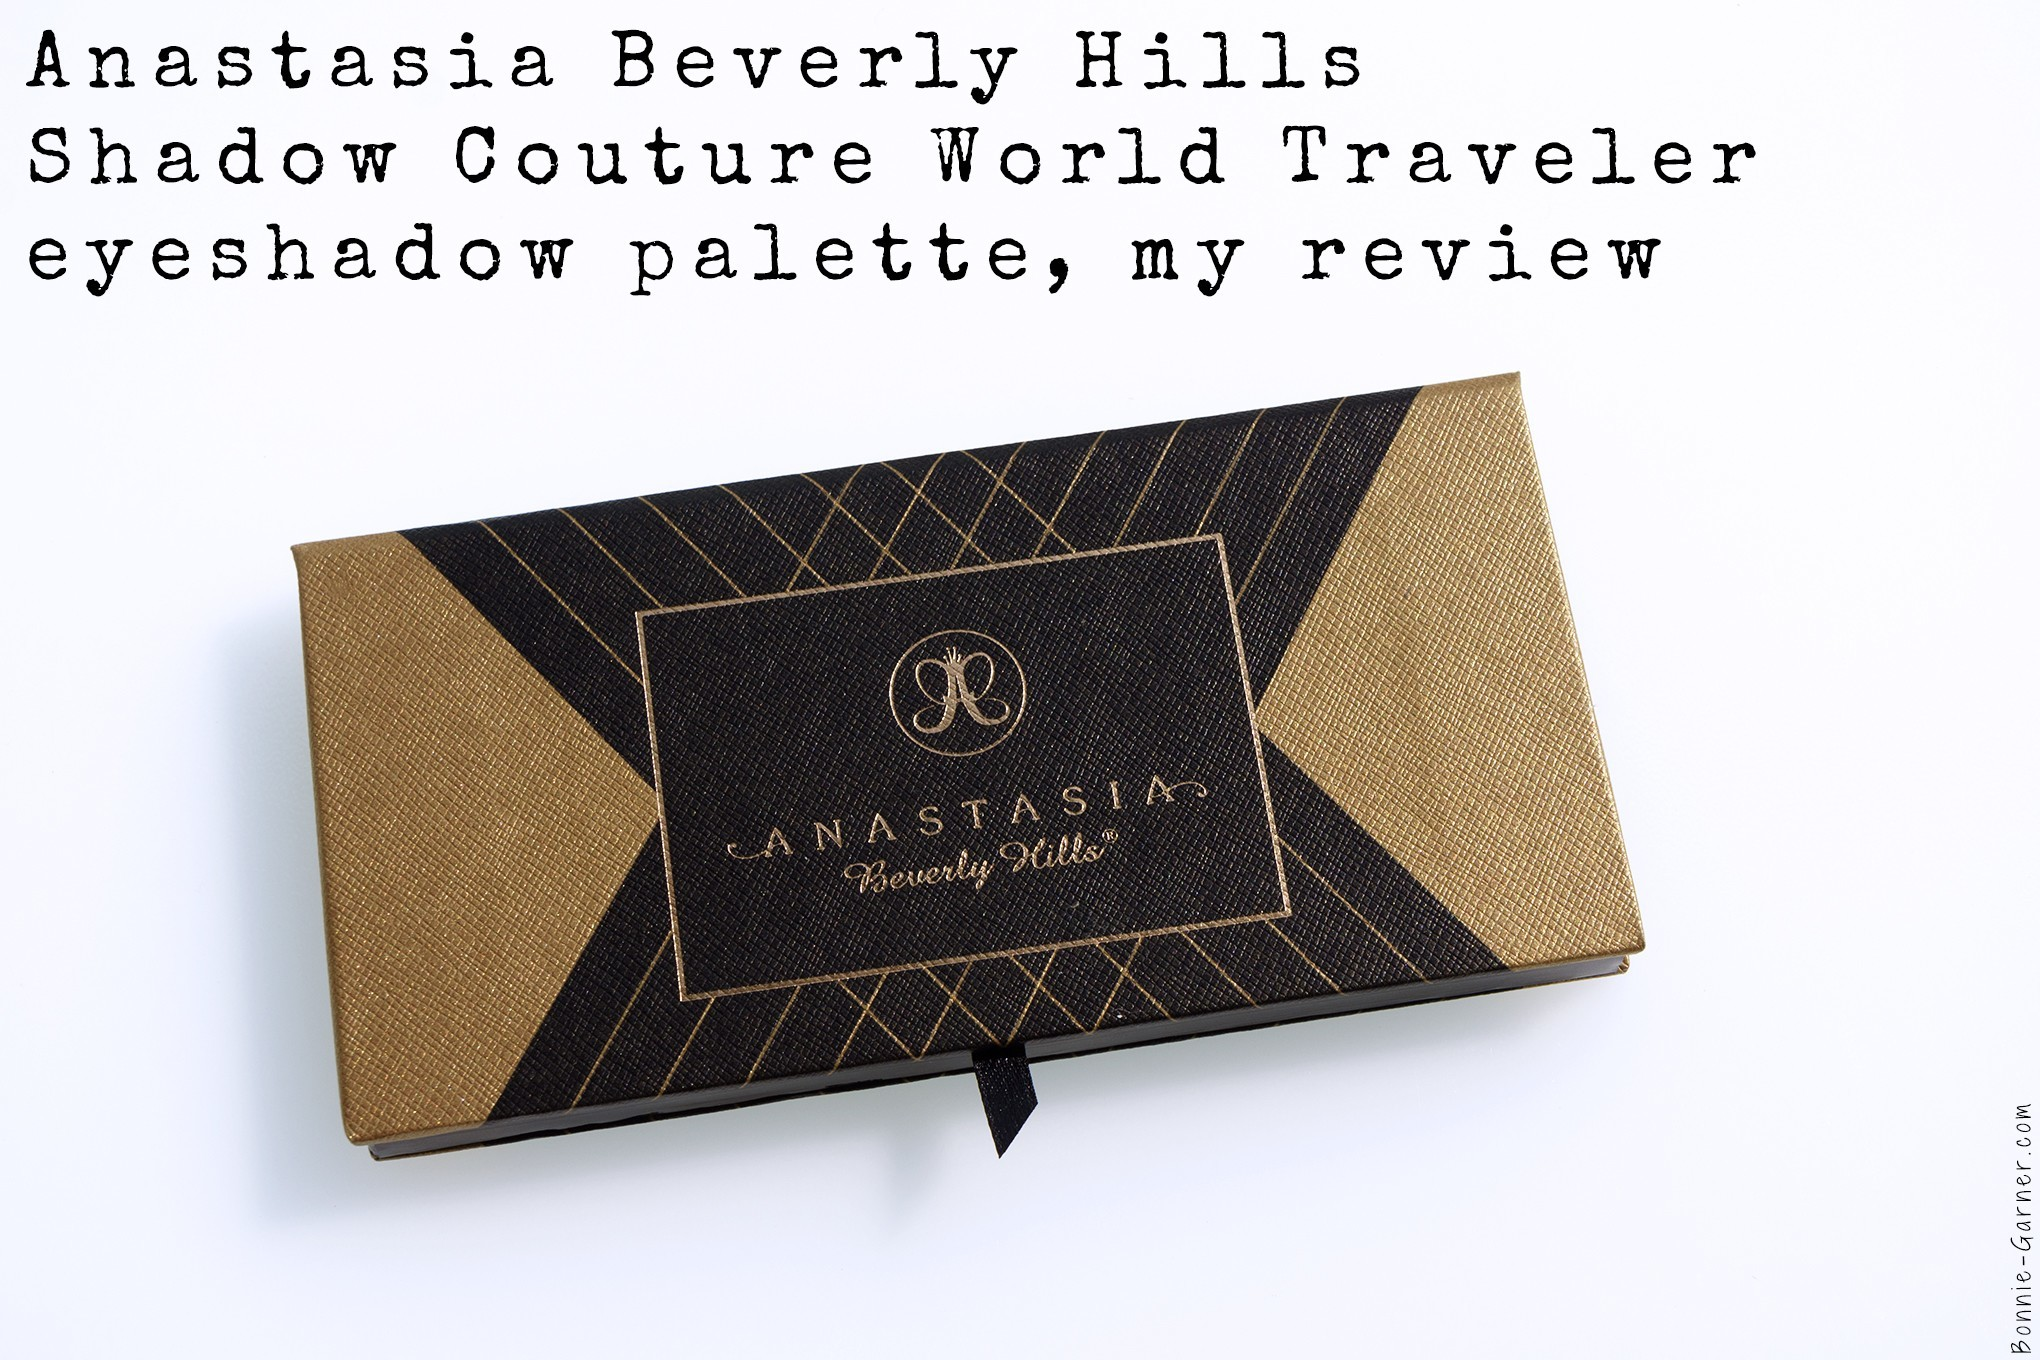 Anastasia Beverly Hills Shadow Couture World Traveler eyeshadow palette, my review